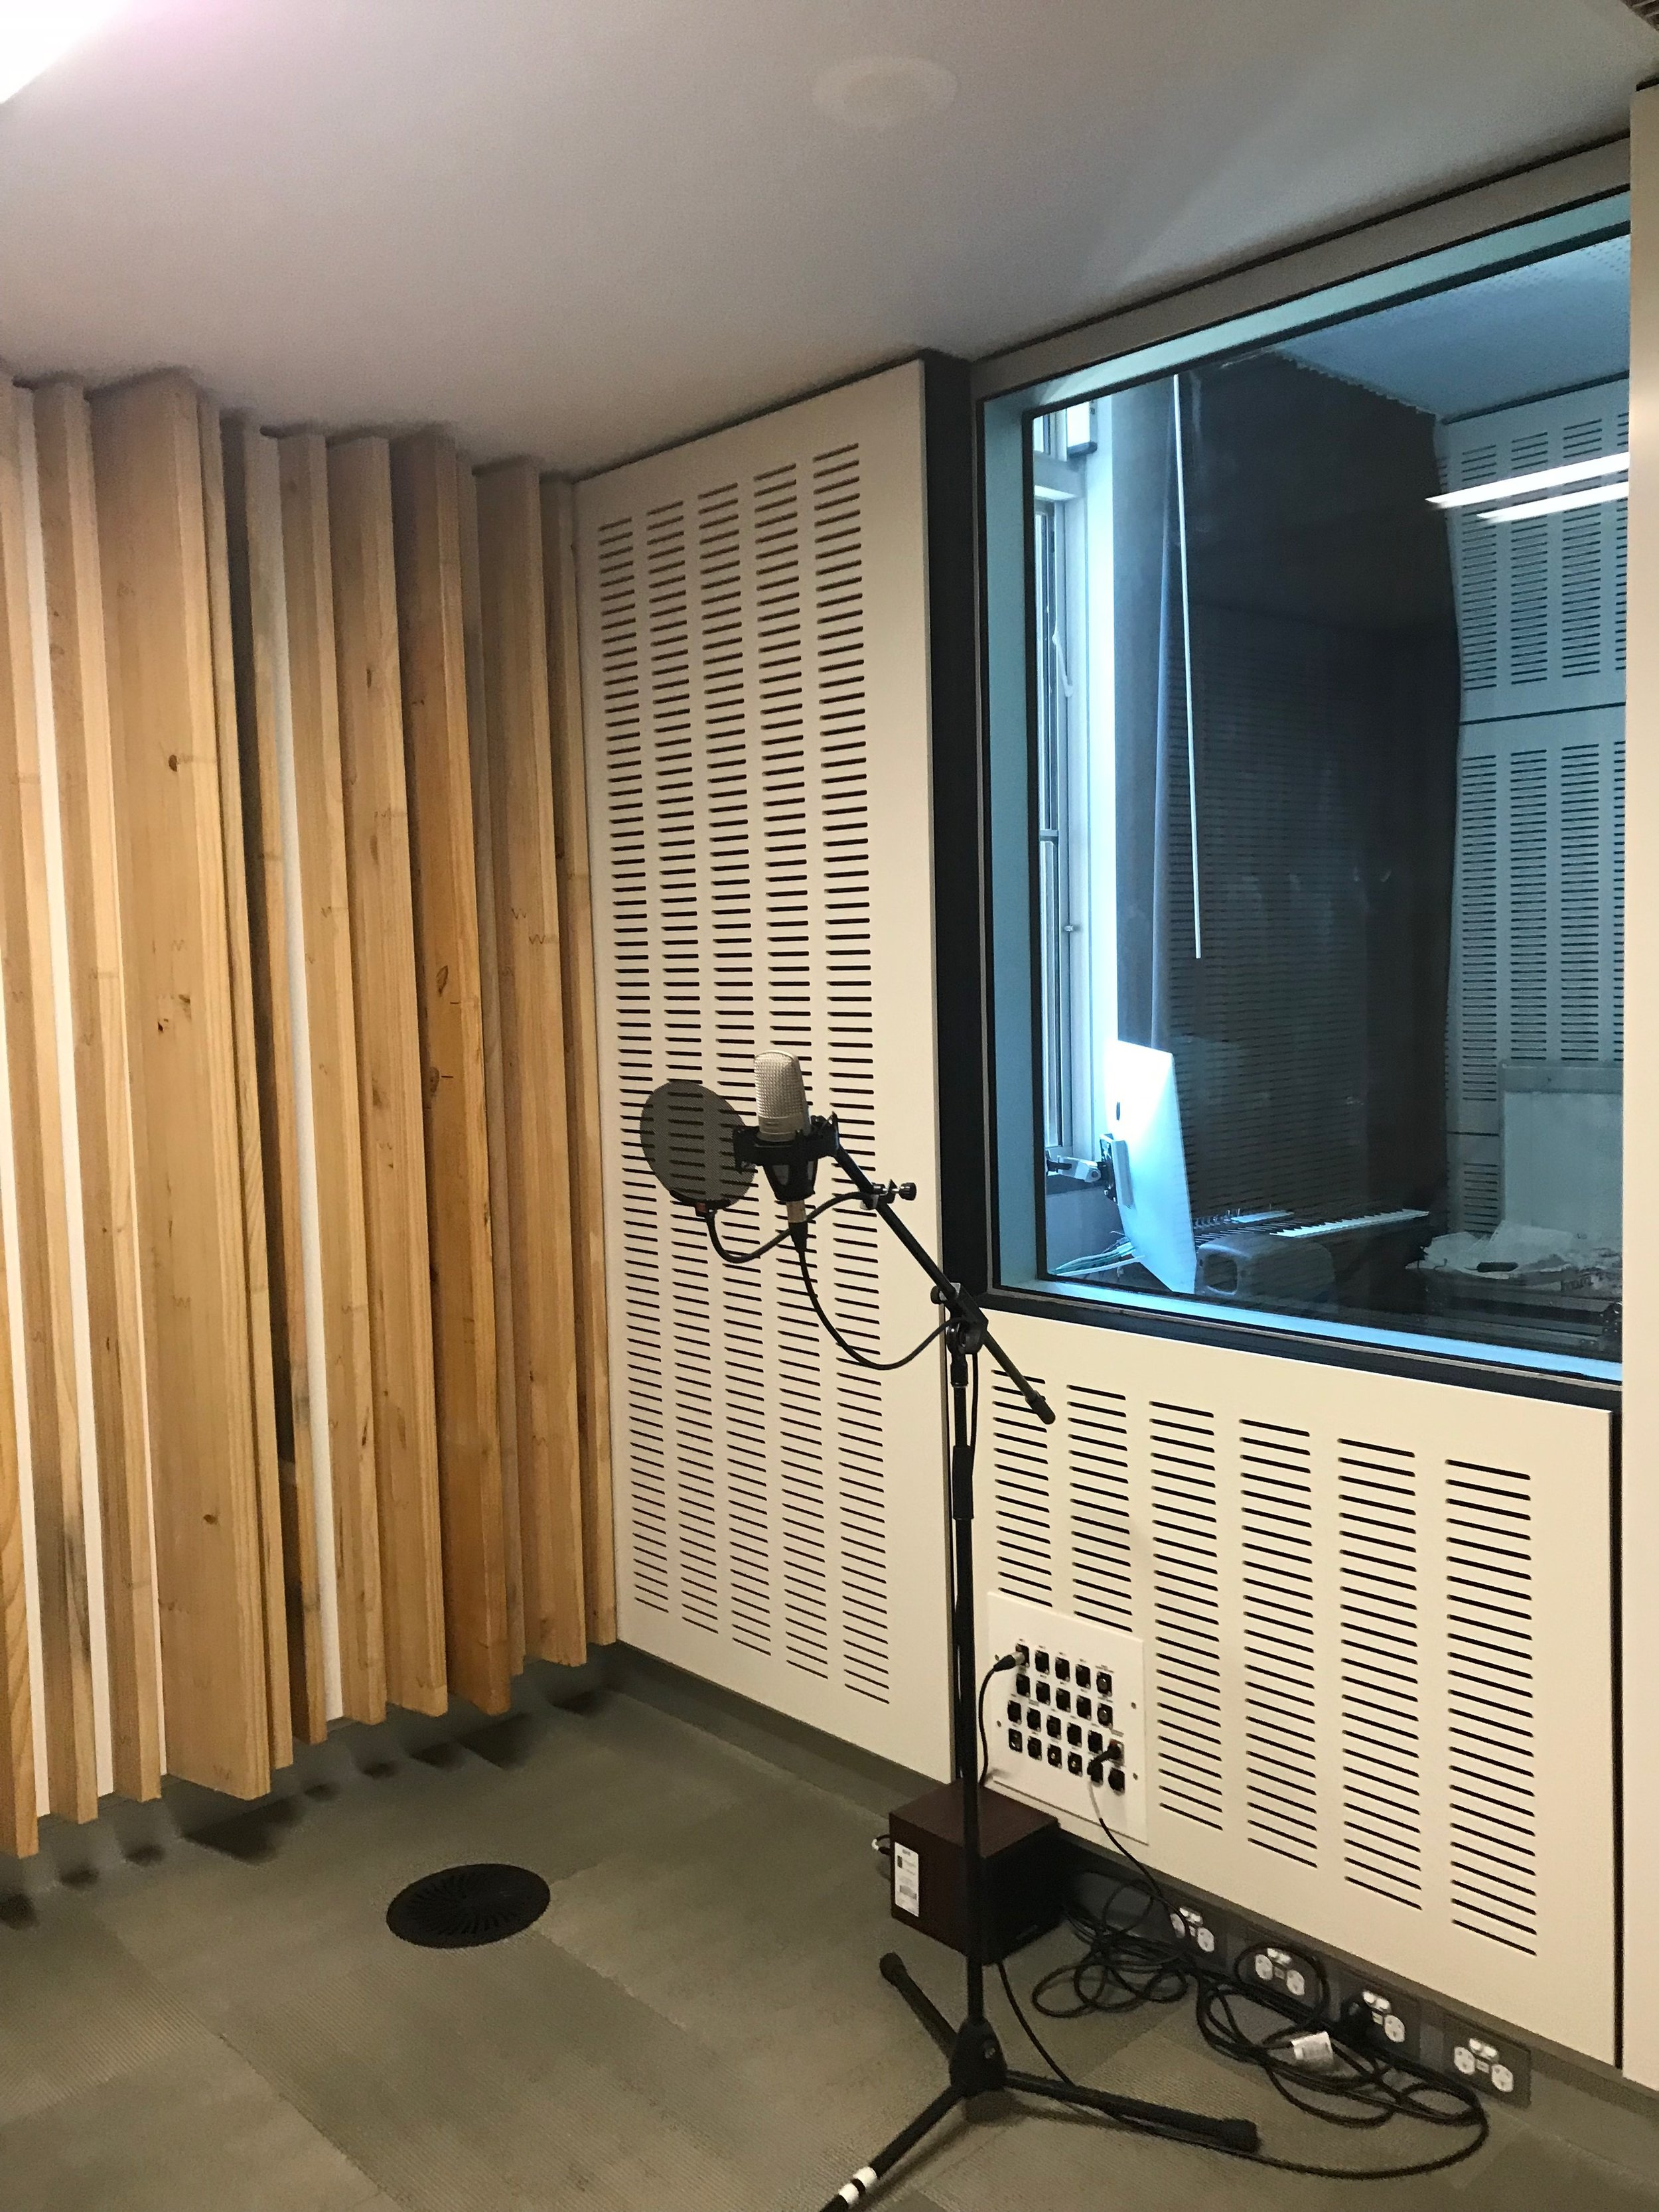 The recording room is used by young people, as well as for local history recordings.